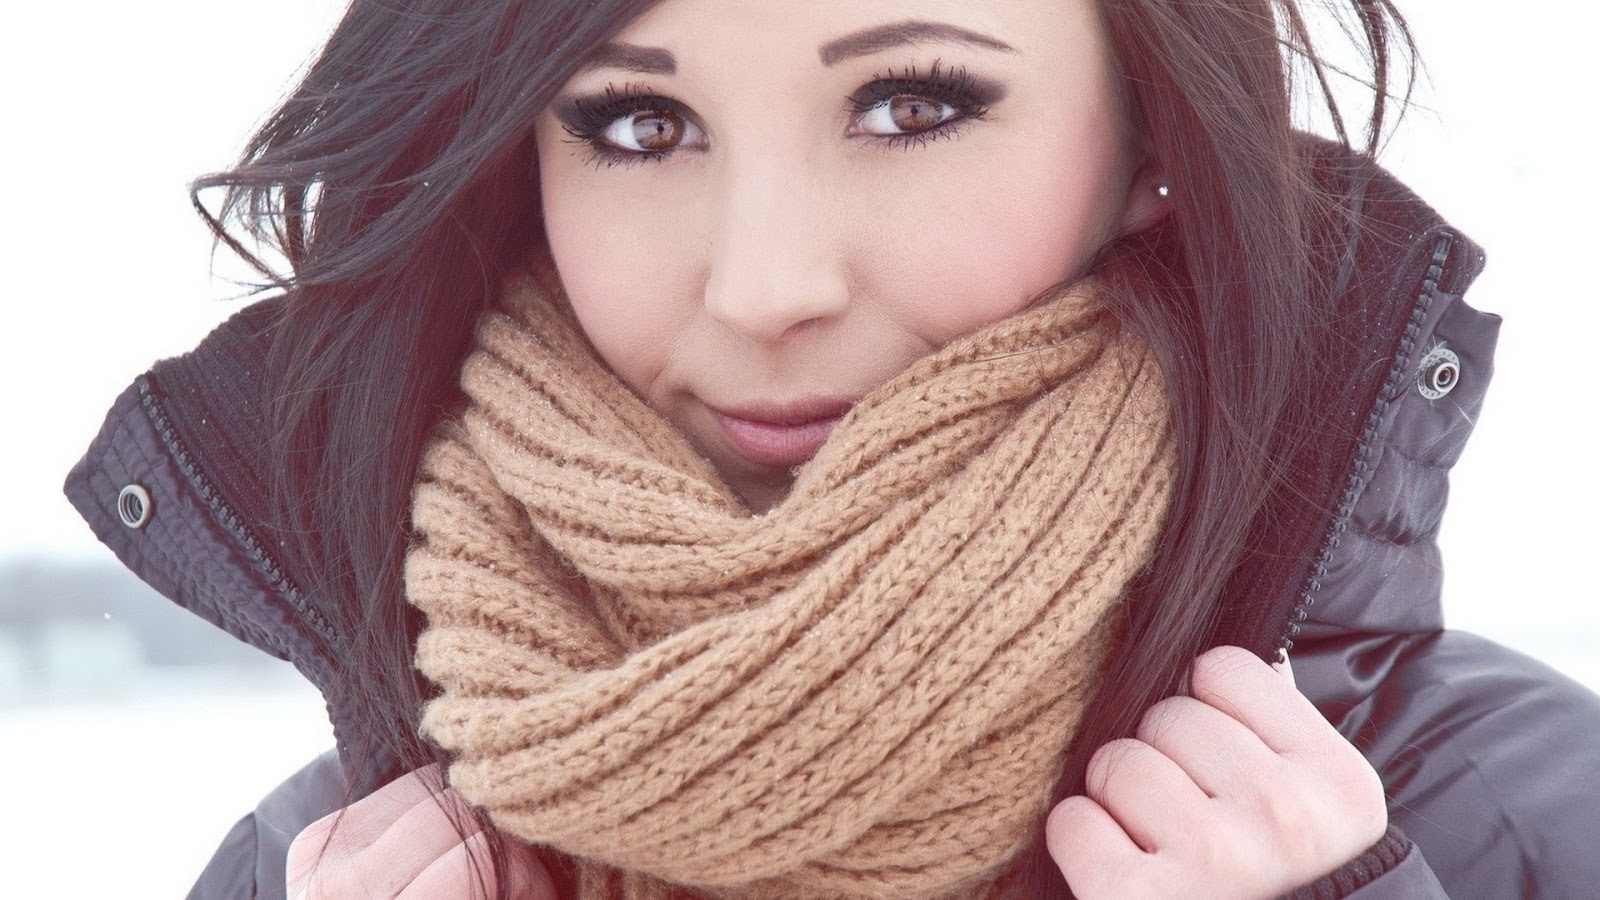 desktop wallpaper brown eyed girl with scarf desktop wallpaper